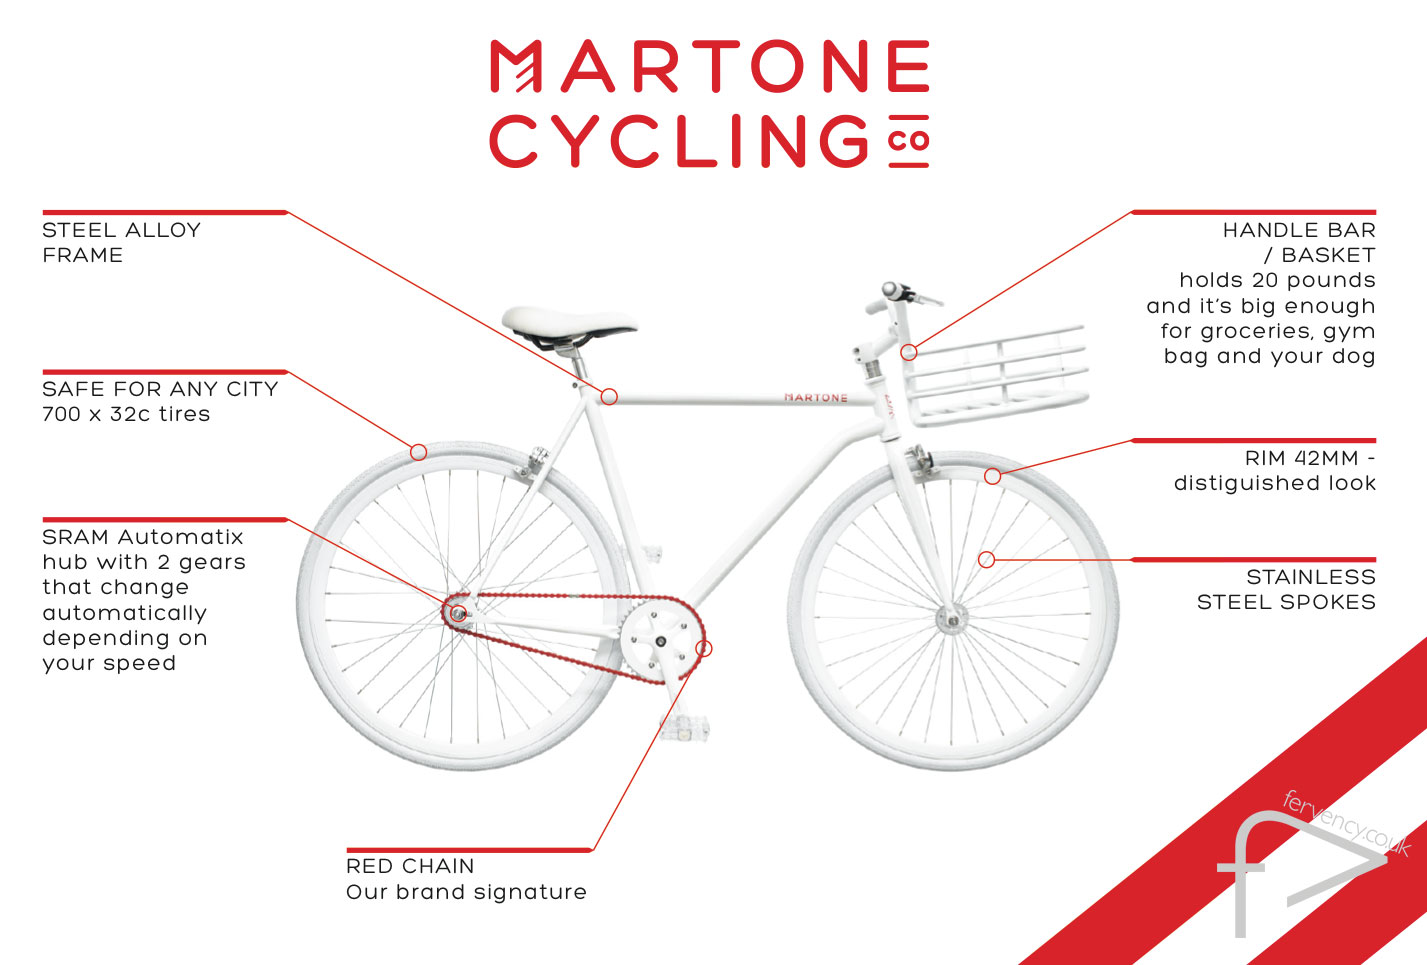 Marton Cycling